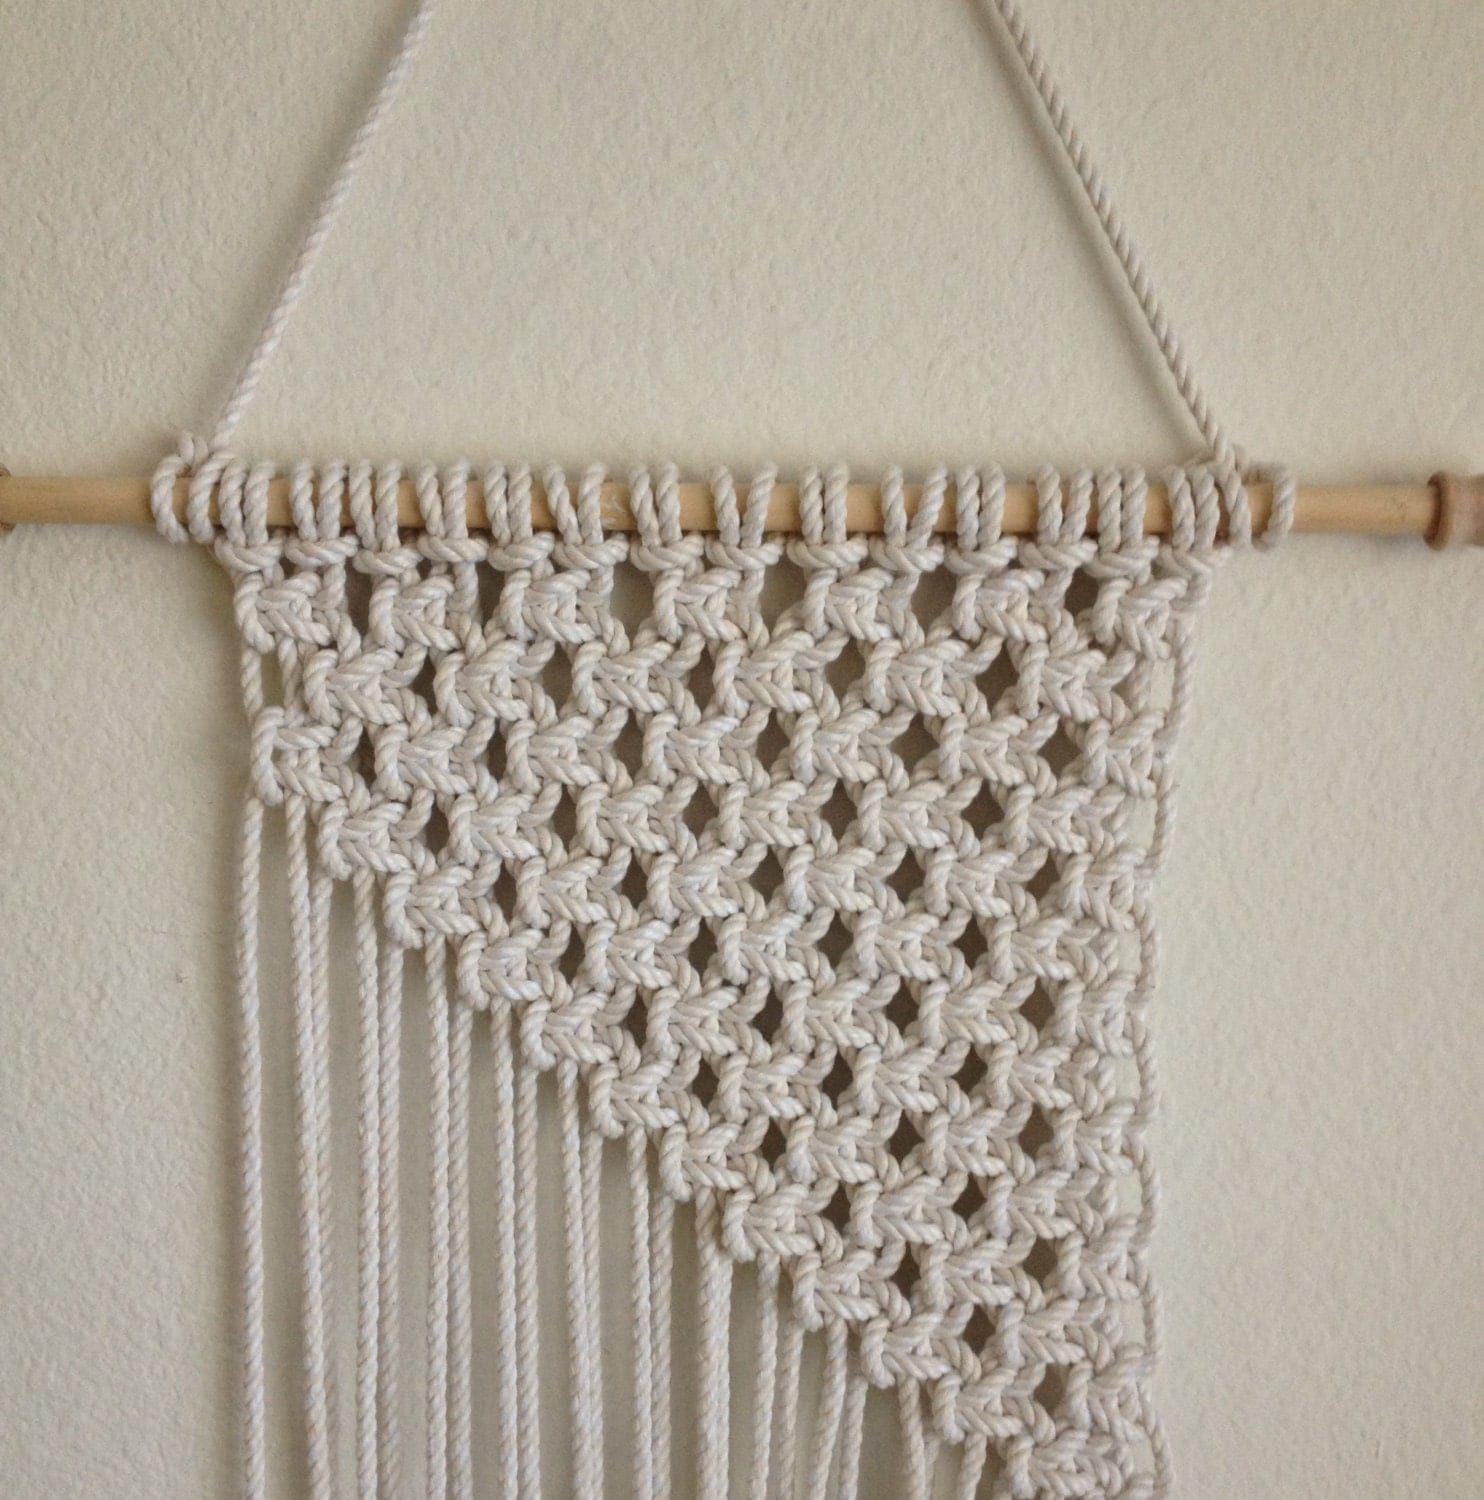 Macrame Wall Hanging Handcrafted Macrame rope by BiziKnitting4You